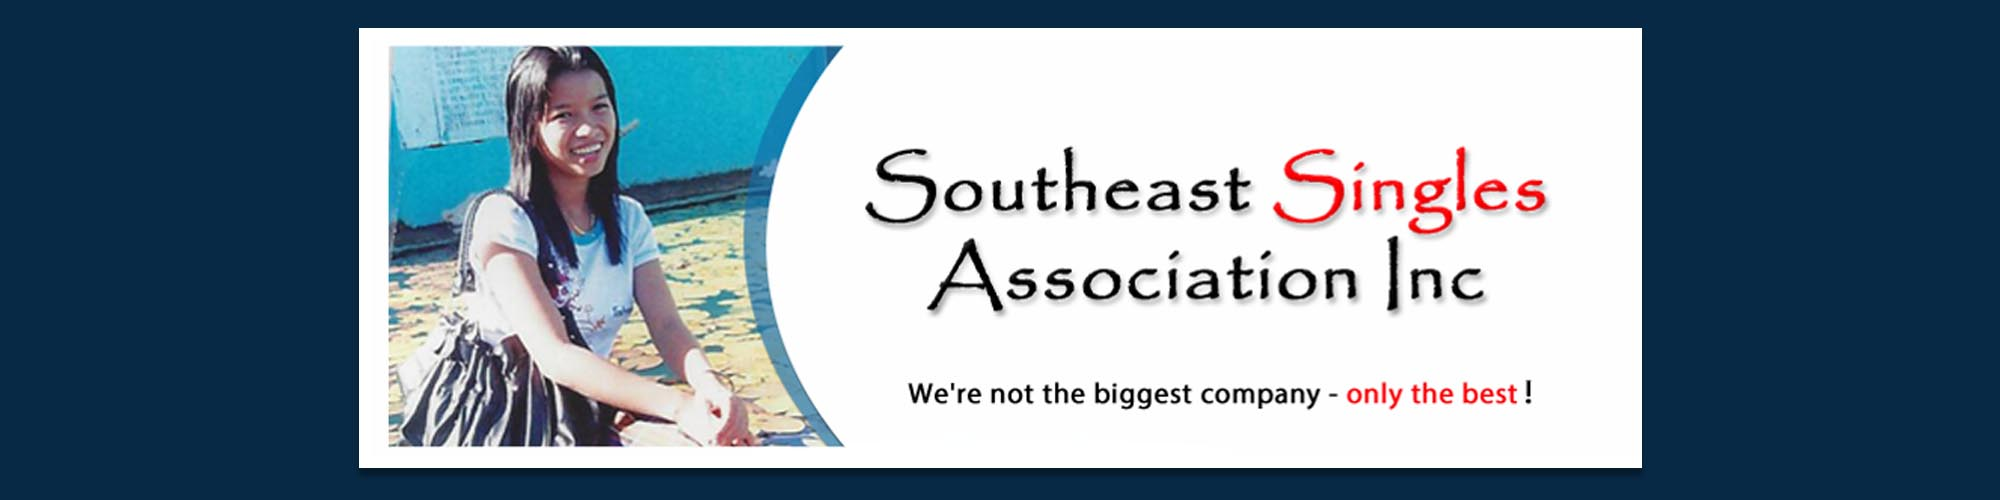 Southeast Singles Association Inc Banner